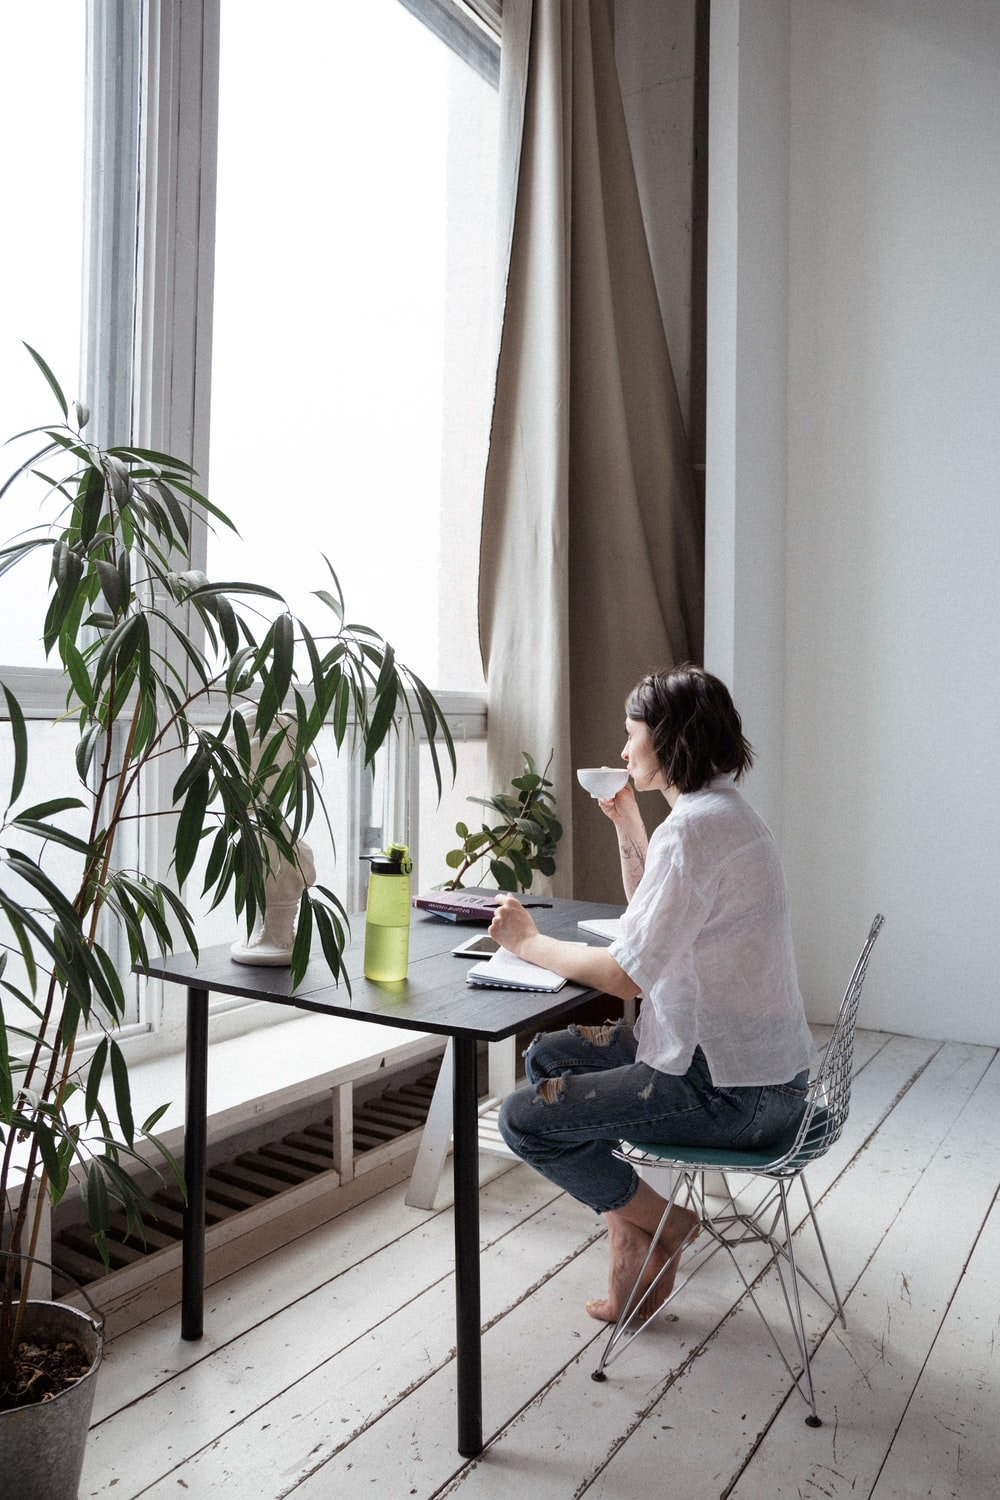 woman in white shirt sitting on chair in front of computer